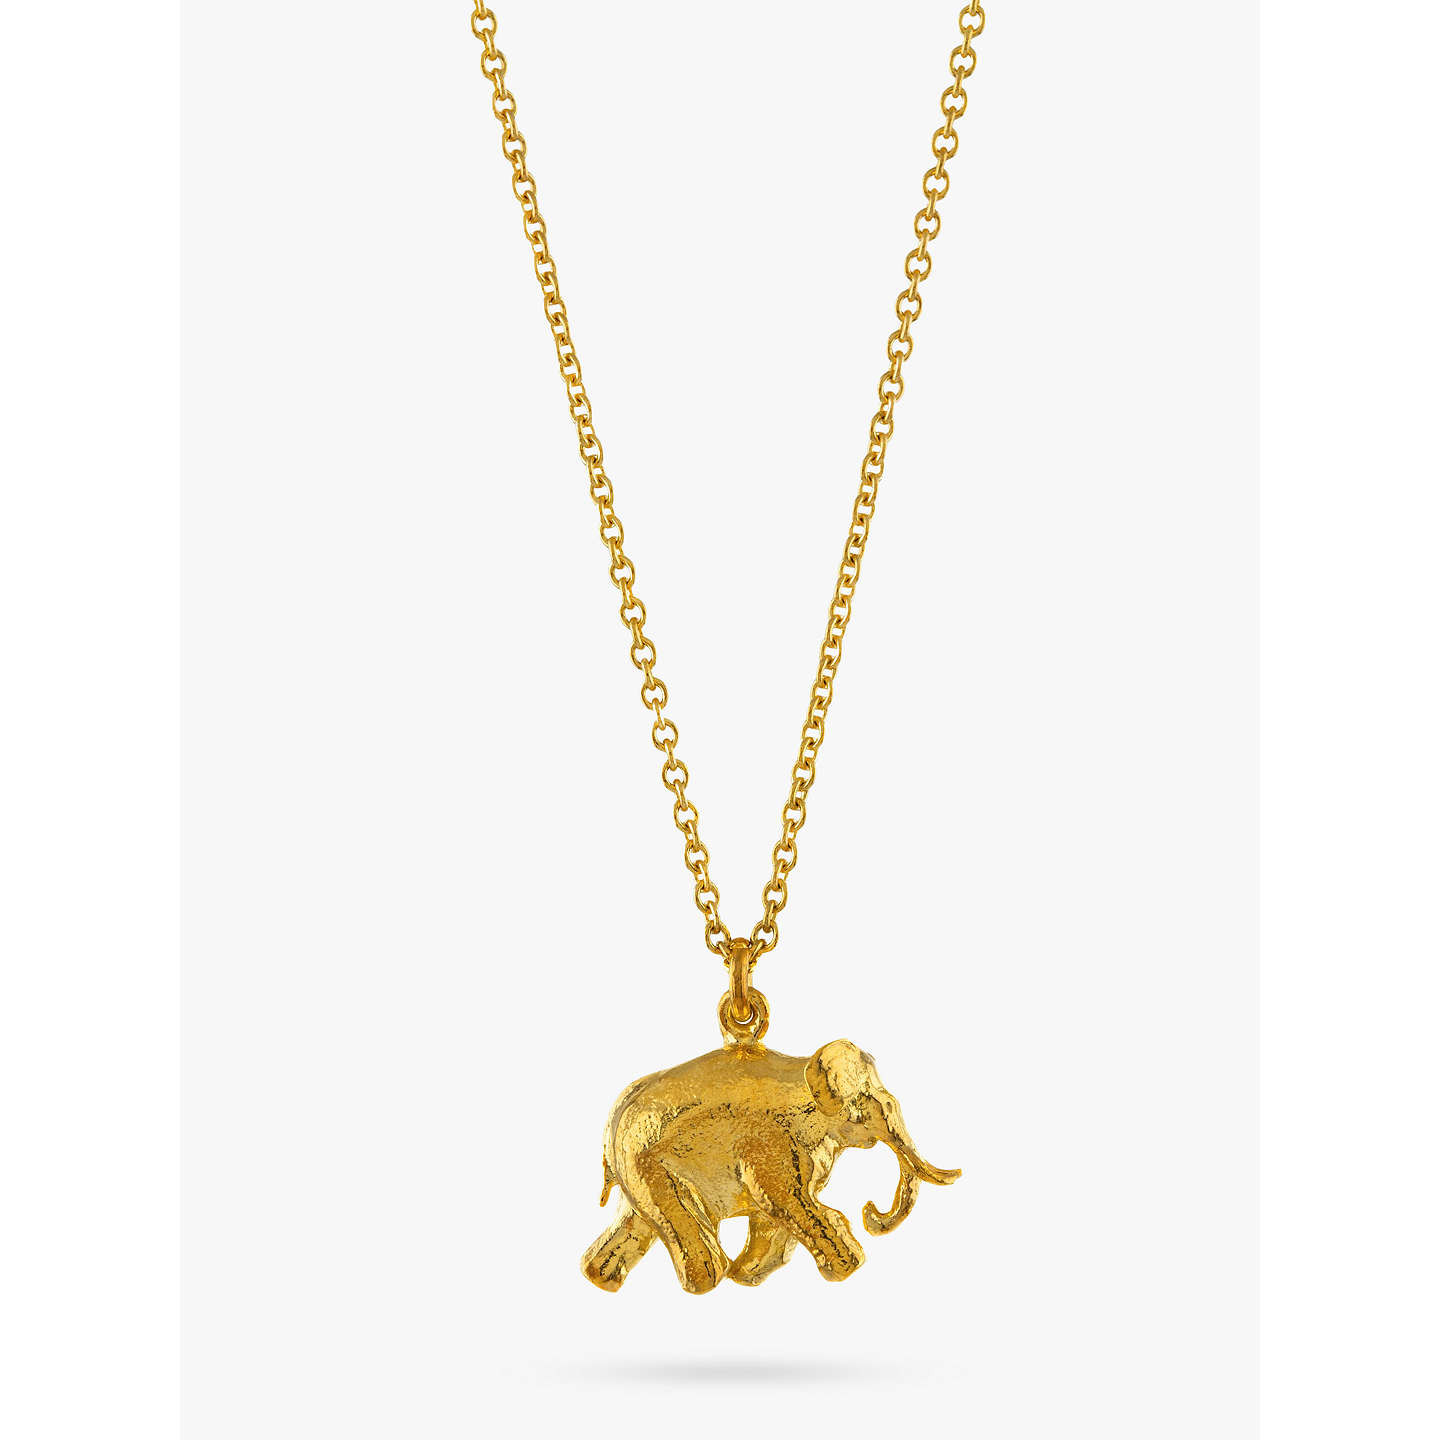 Alex monroe 22ct gold plated sterling silver elephant pendant buyalex monroe 22ct gold plated sterling silver elephant pendant necklace gold online at johnlewis aloadofball Image collections